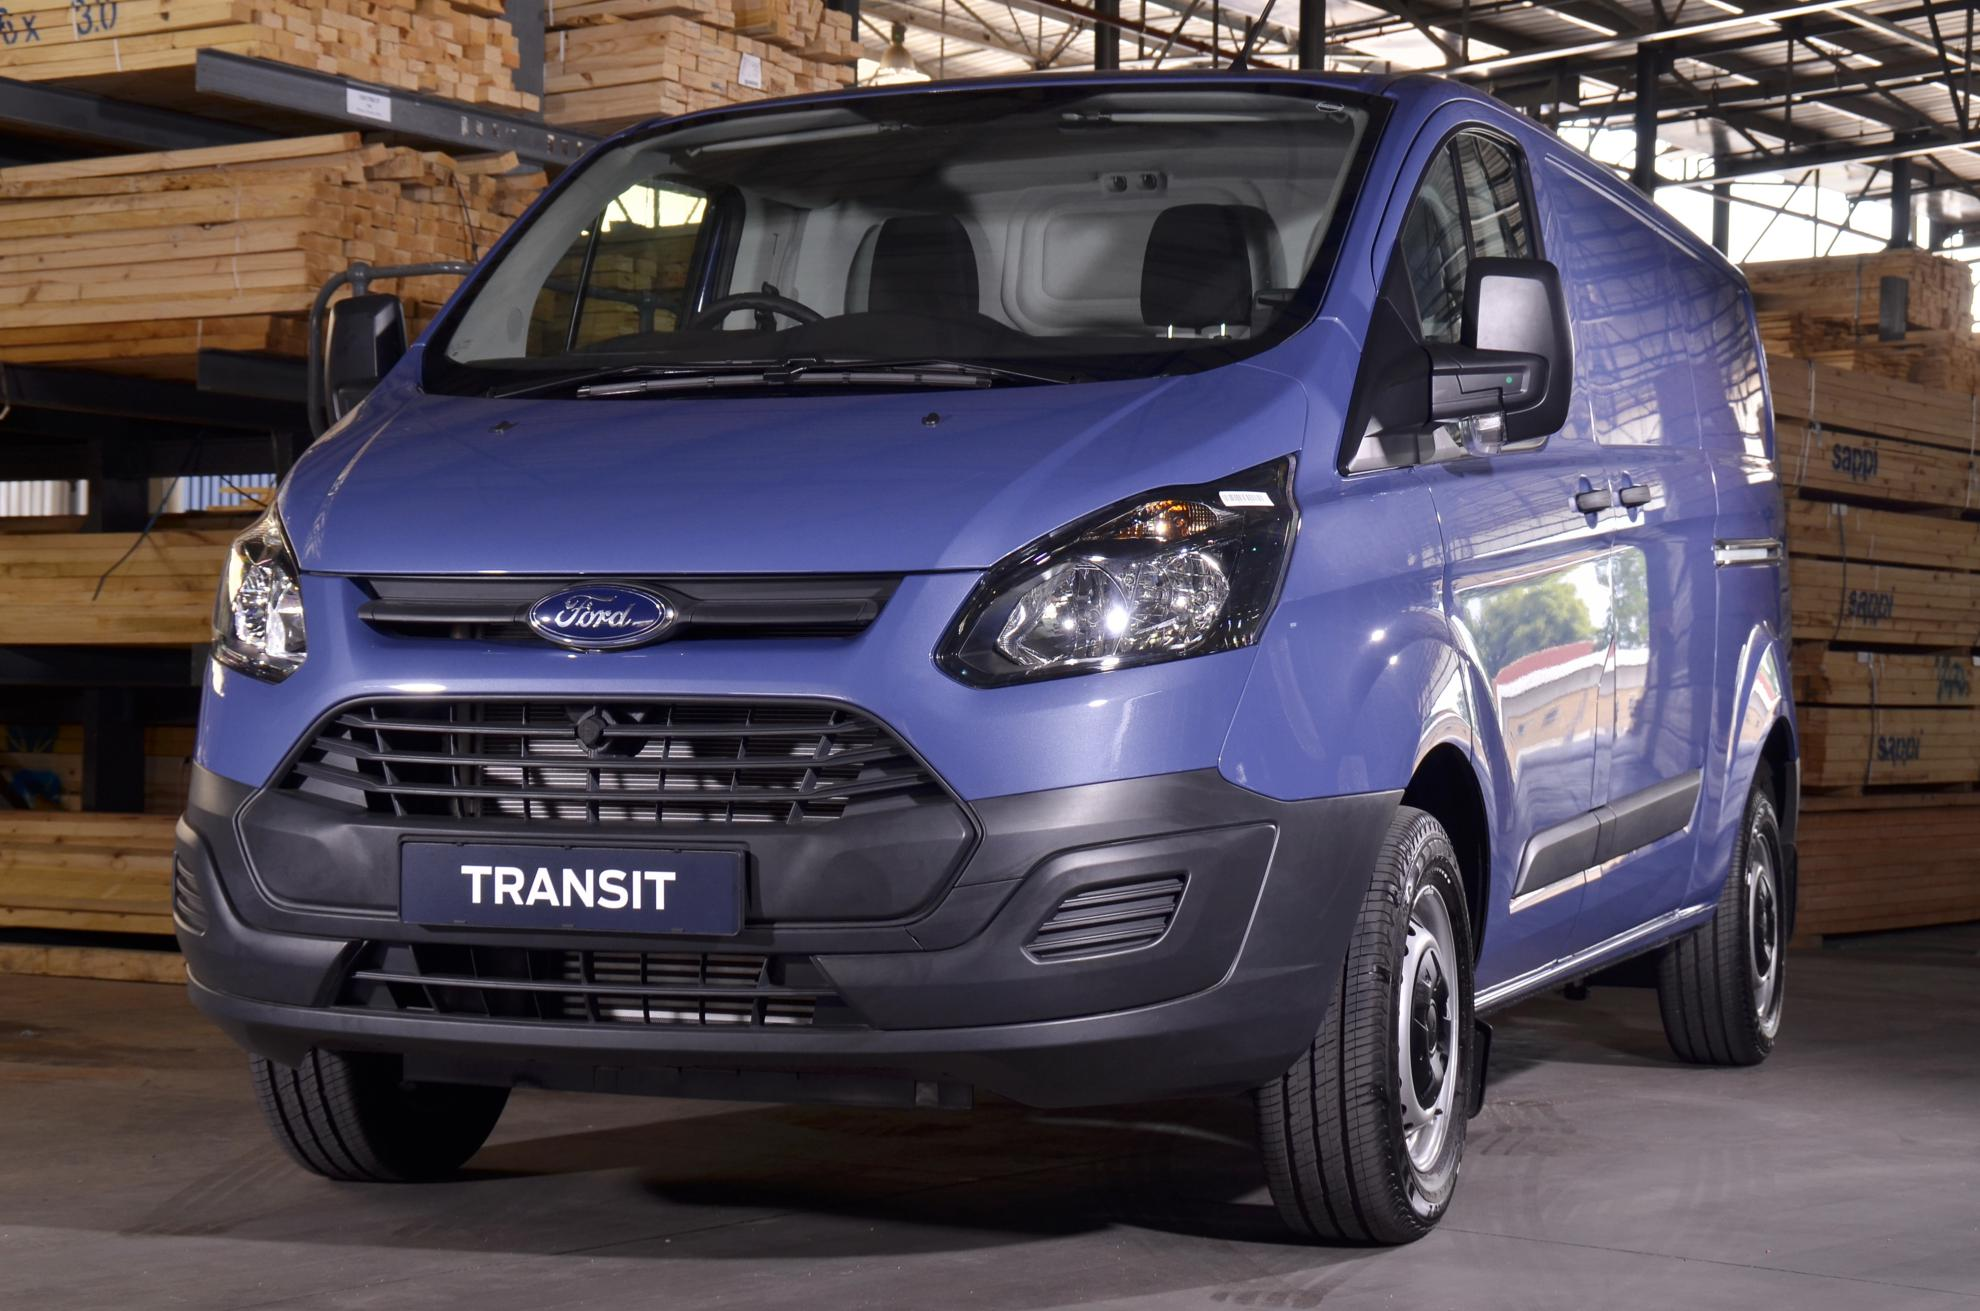 Ford Transit Commercial Vehicle